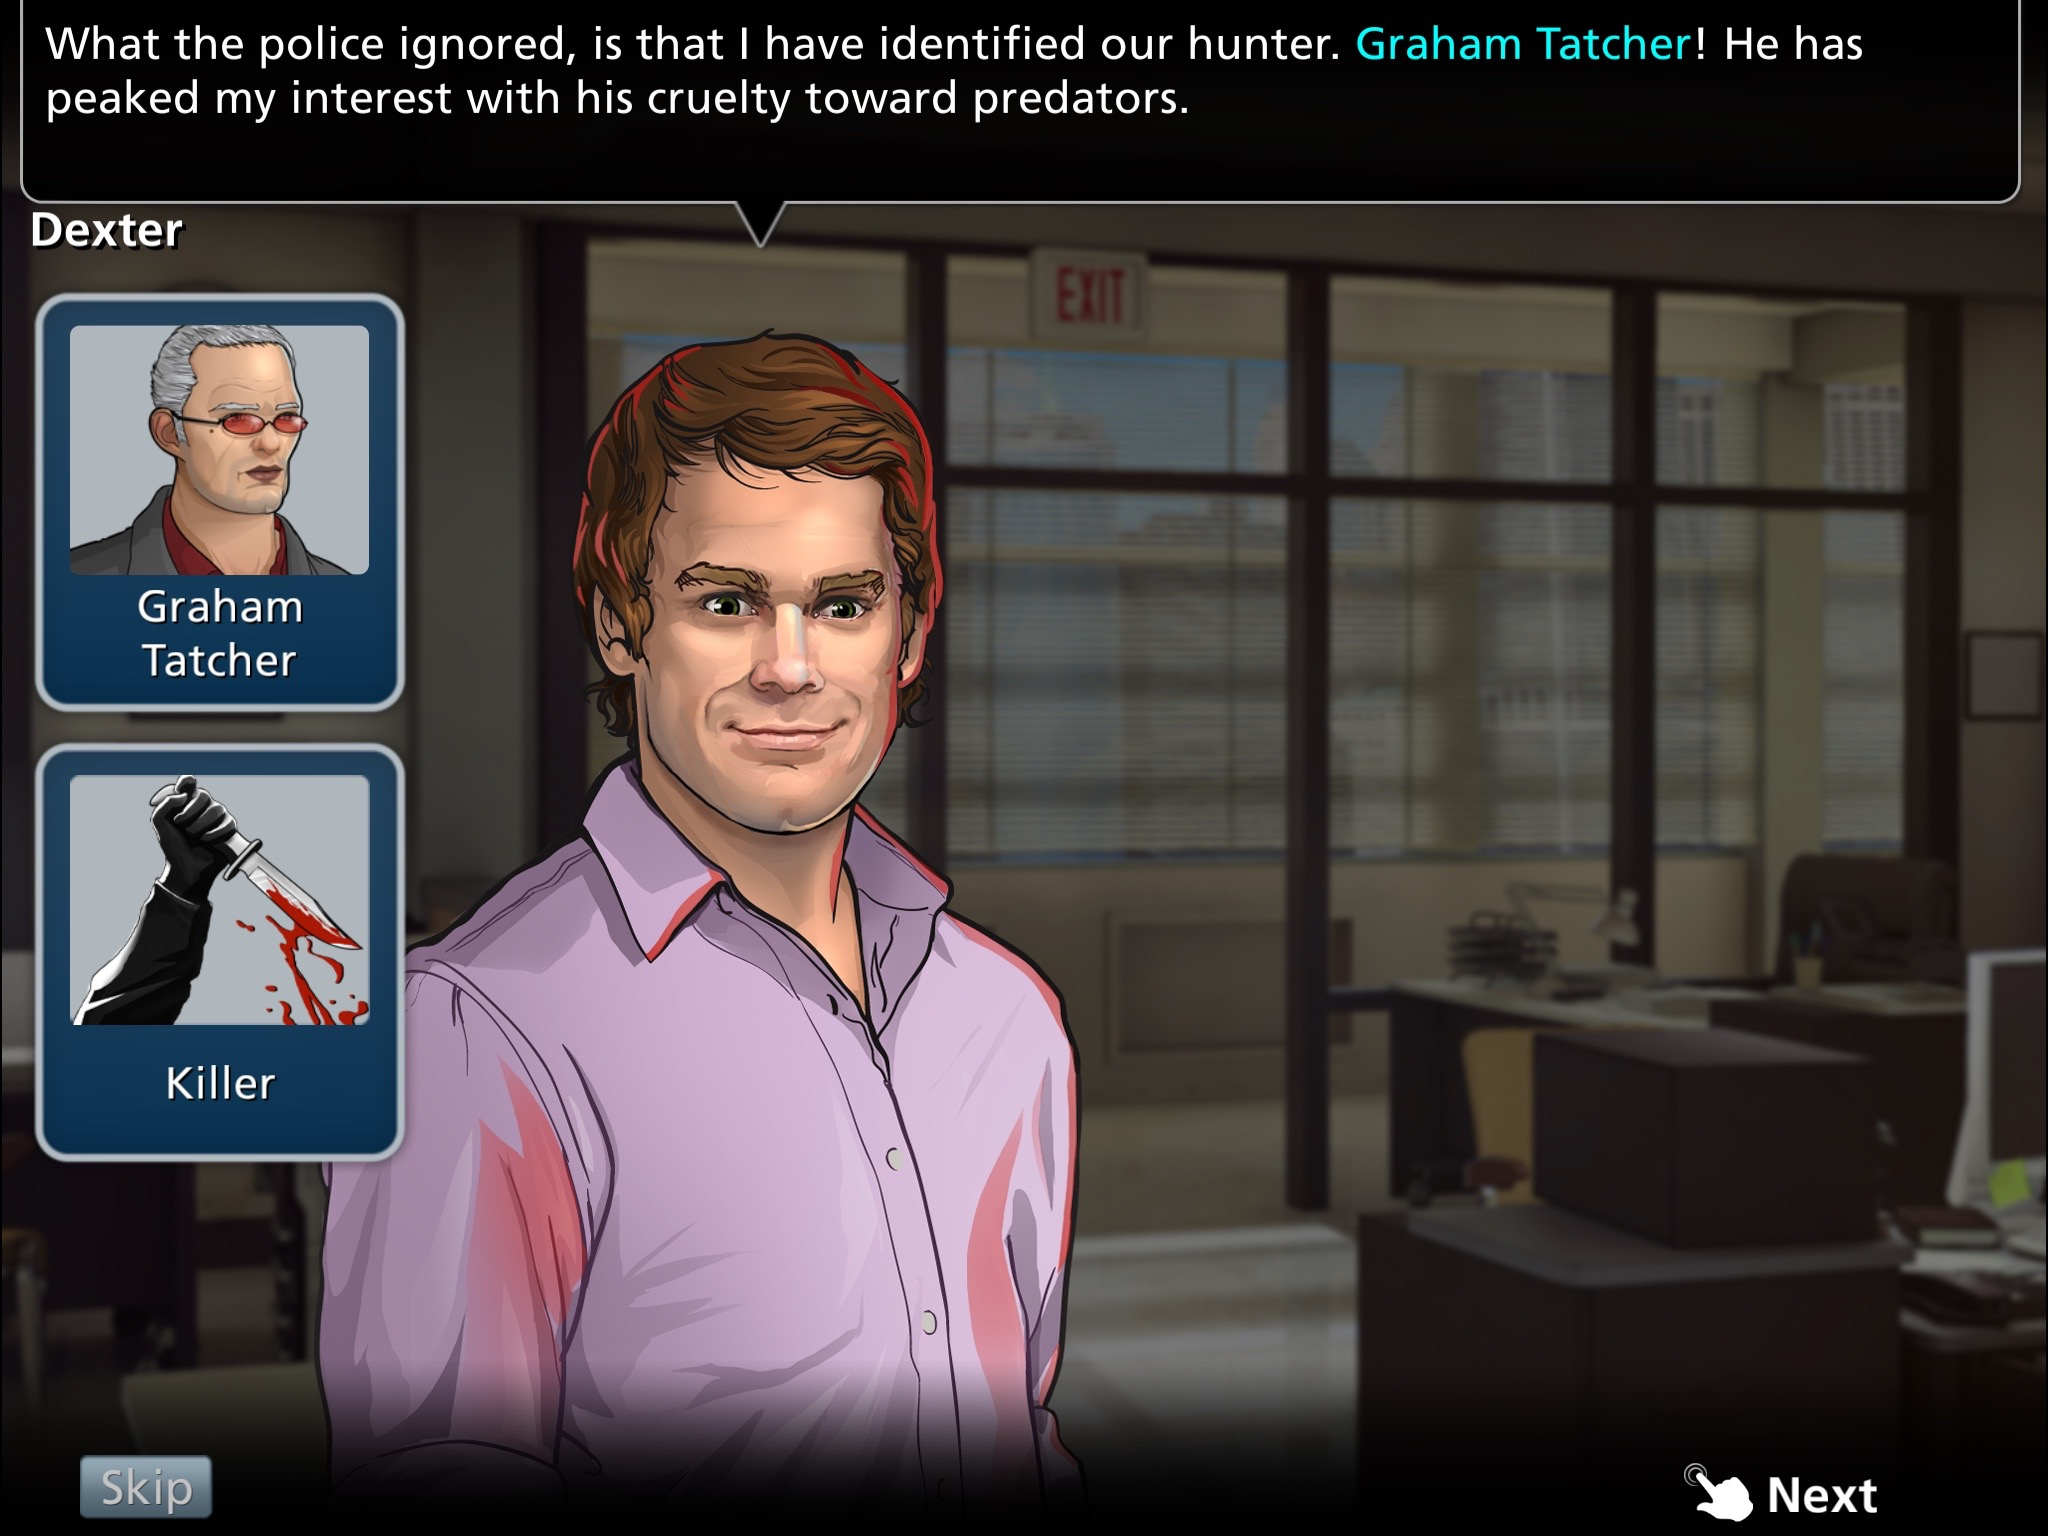 Dexter: Hidden Darkness - Simultaneously bland and unpalatably garish